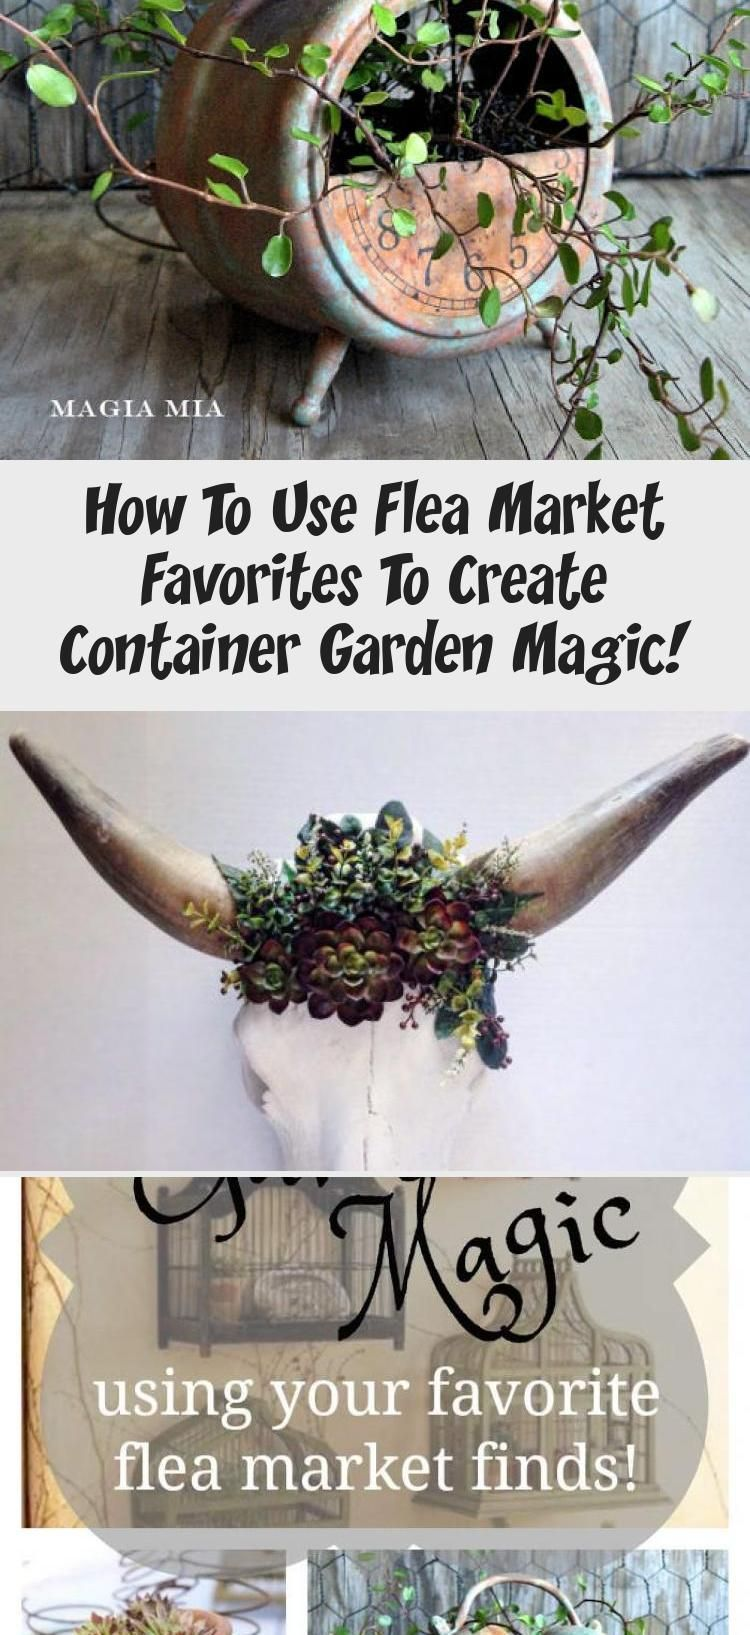 How To Use Flea Market Favorites To Create Container Garden Magic  Decor Dıy How To Use Flea Market Favorites To Create Container Garden Magic  Decor Dıy